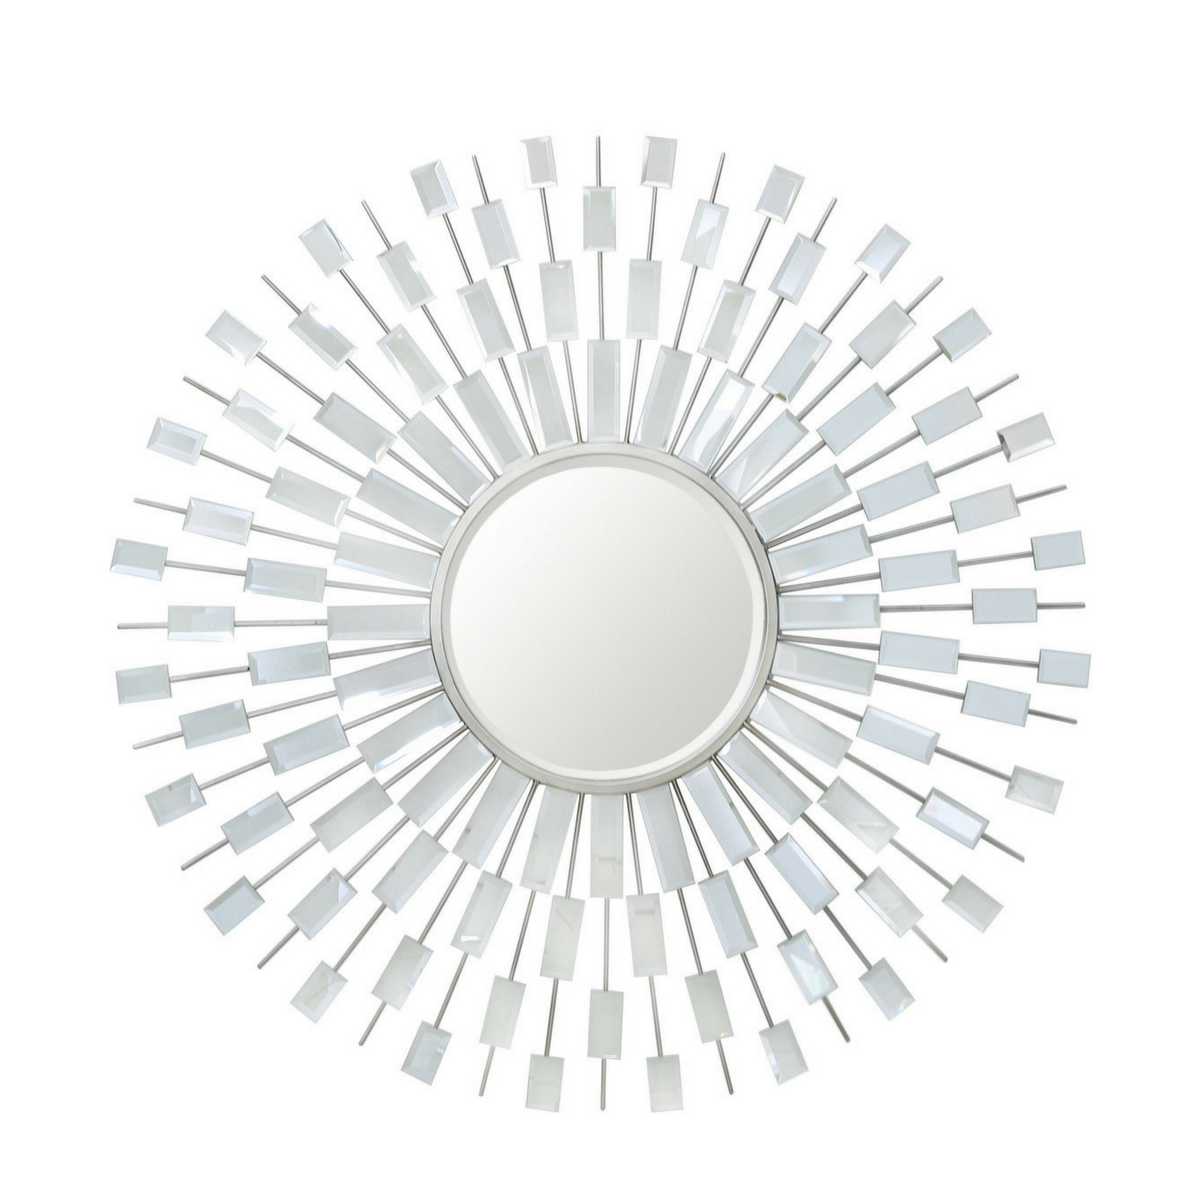 Sunburst Wall Mirrors Inside Most Current Sunburst Silver Wall Mirror (View 16 of 20)